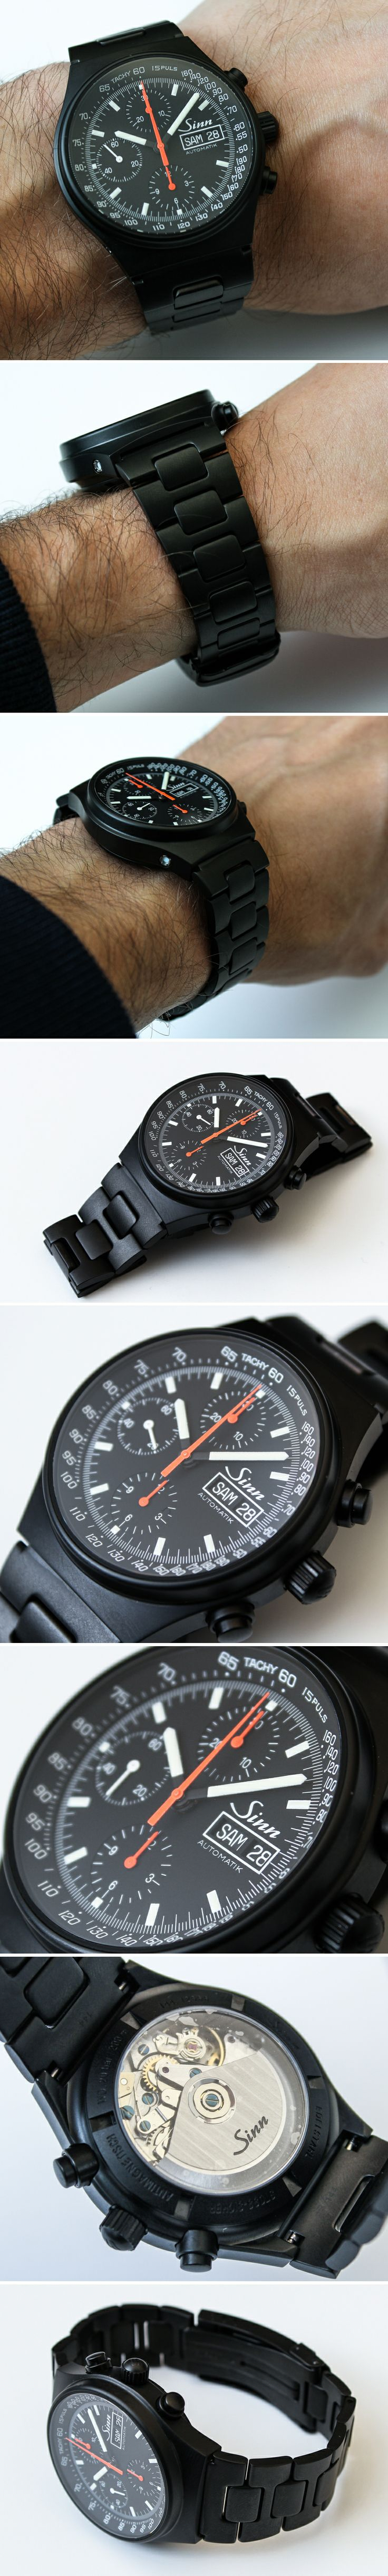 Sinn 144 St S Jubilee Anniversary Limited Edition Watch. 300 pieces will be made and it will cost aprox $3,000 USD.